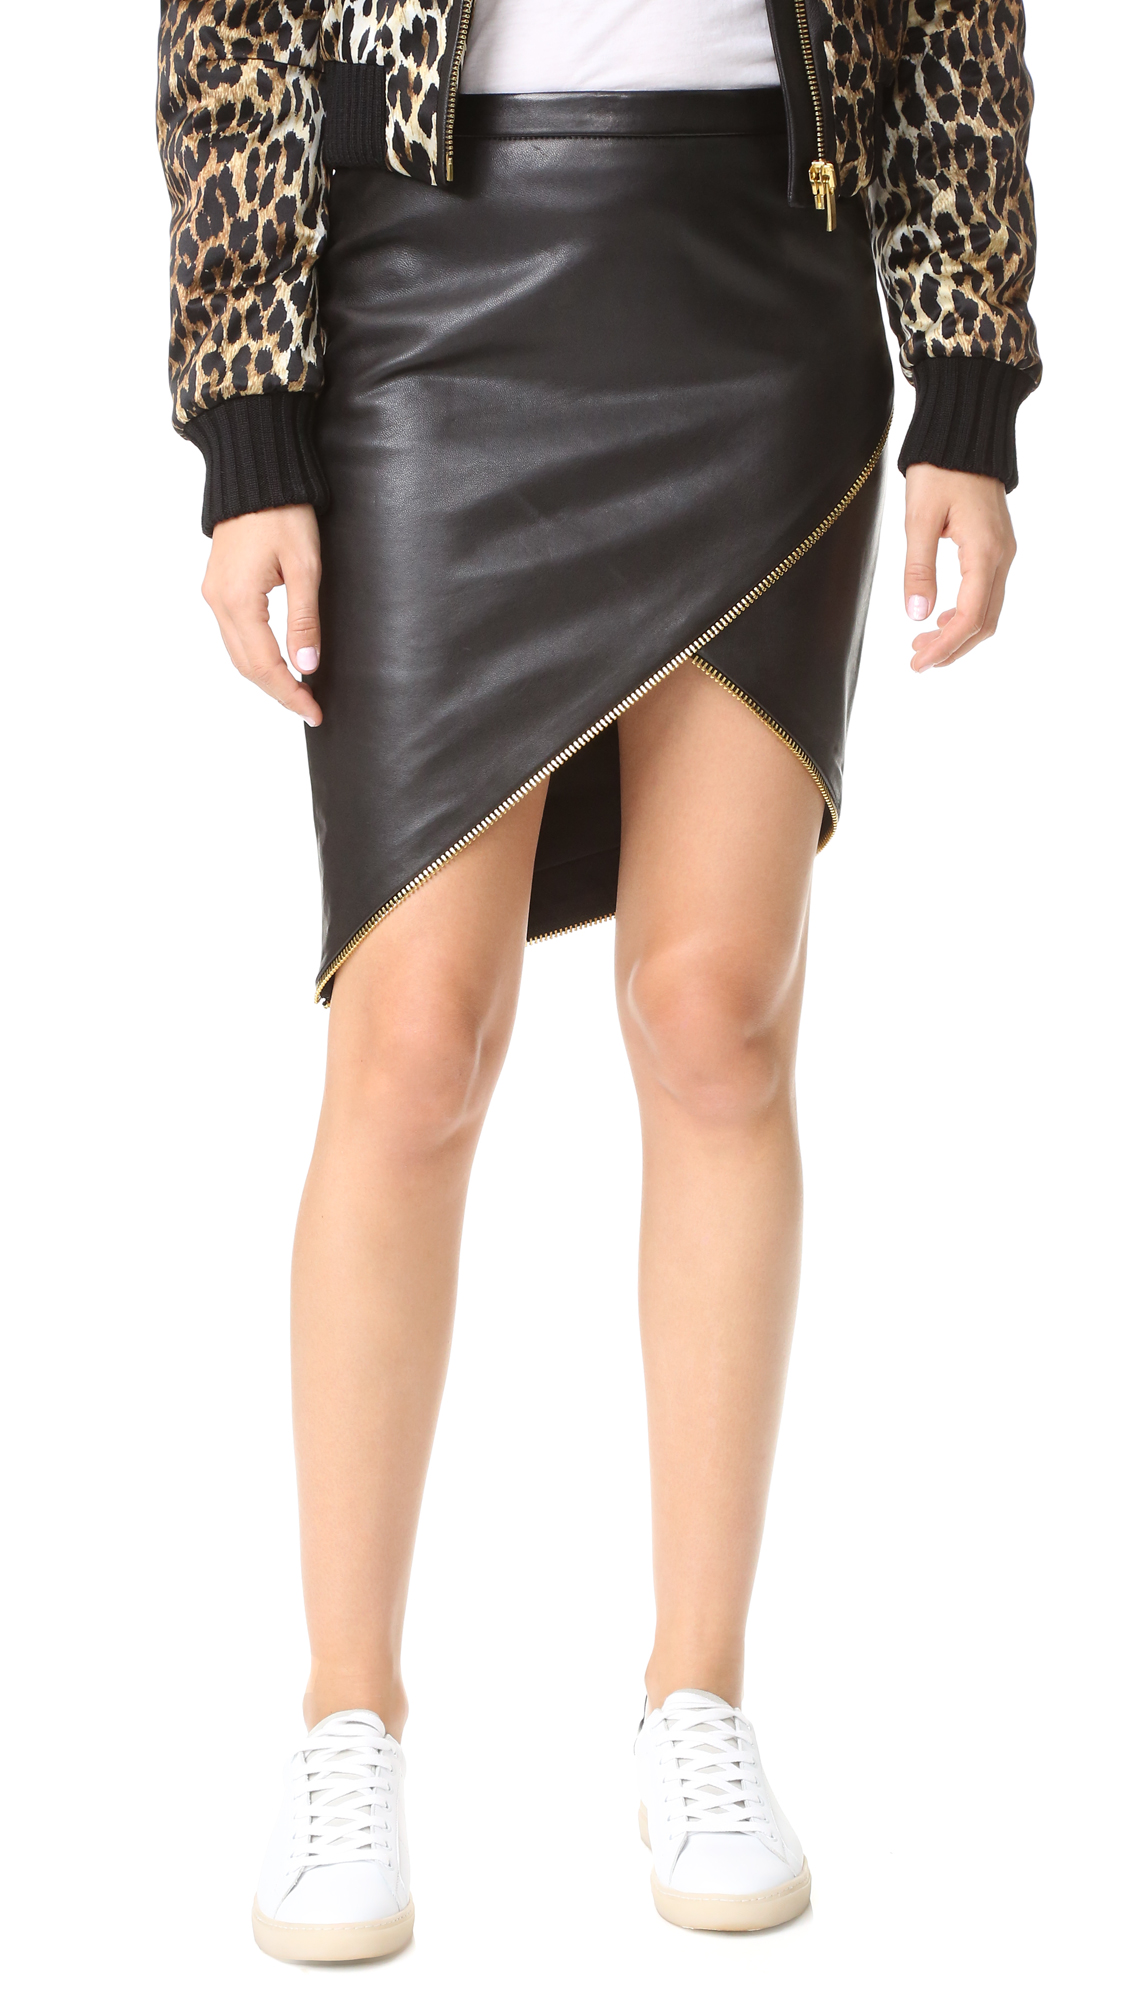 Zipper accents give this Michelle Mason skirt an edgy aesthetic. Asymmetric hem. Back zip. Lined. Fabric: Leather. Shell: 100% lambskin. Lining: 100% polyester. Leather clean. Imported, India. Measurements Length 1: 12.5in / 32cm, to shortest point Length 2: 22.5in / 57cm, to